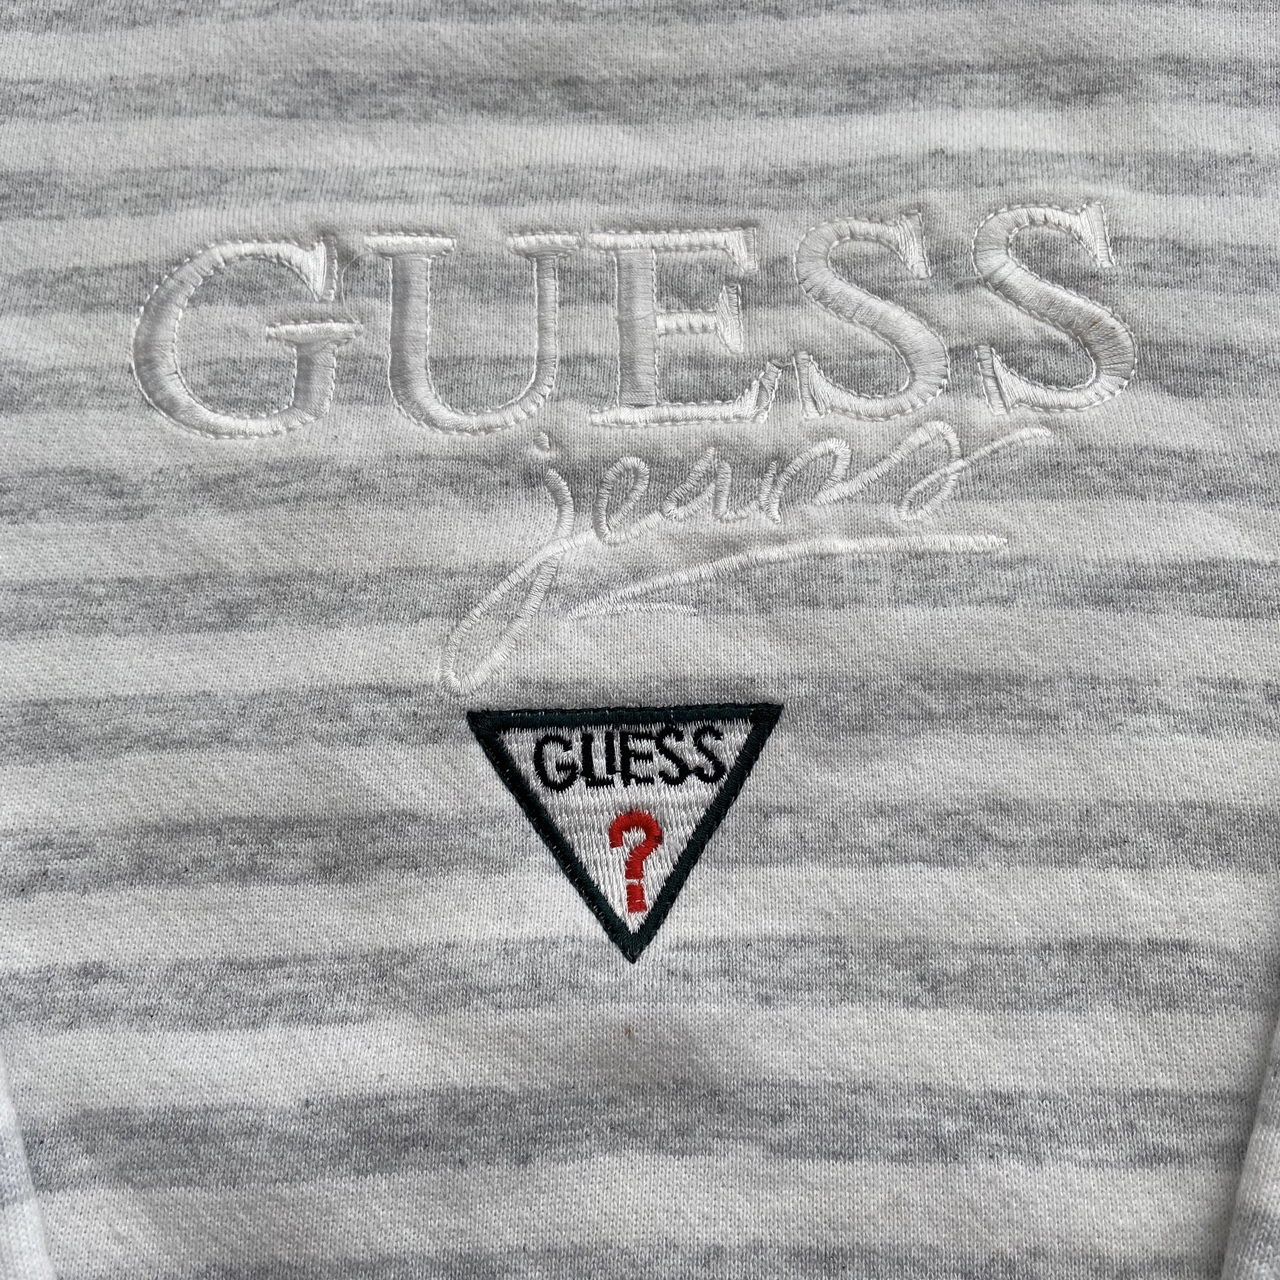 Product Image 2 - Vintage guess sweatshirt White striped design